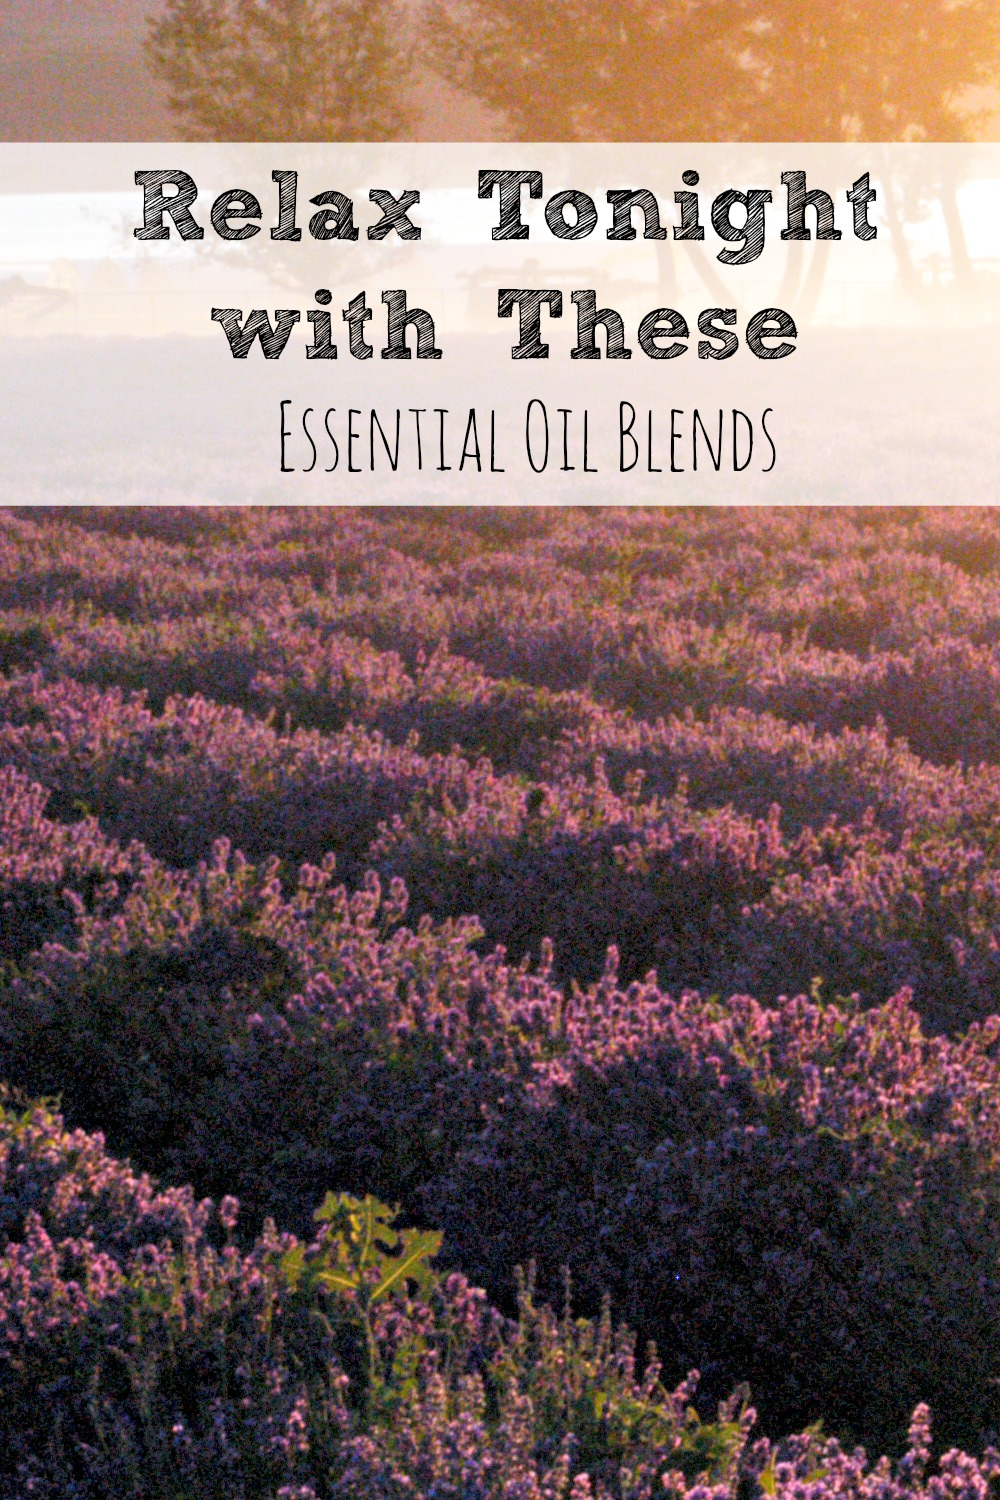 Relax Tonight with These Essential Oil Blends